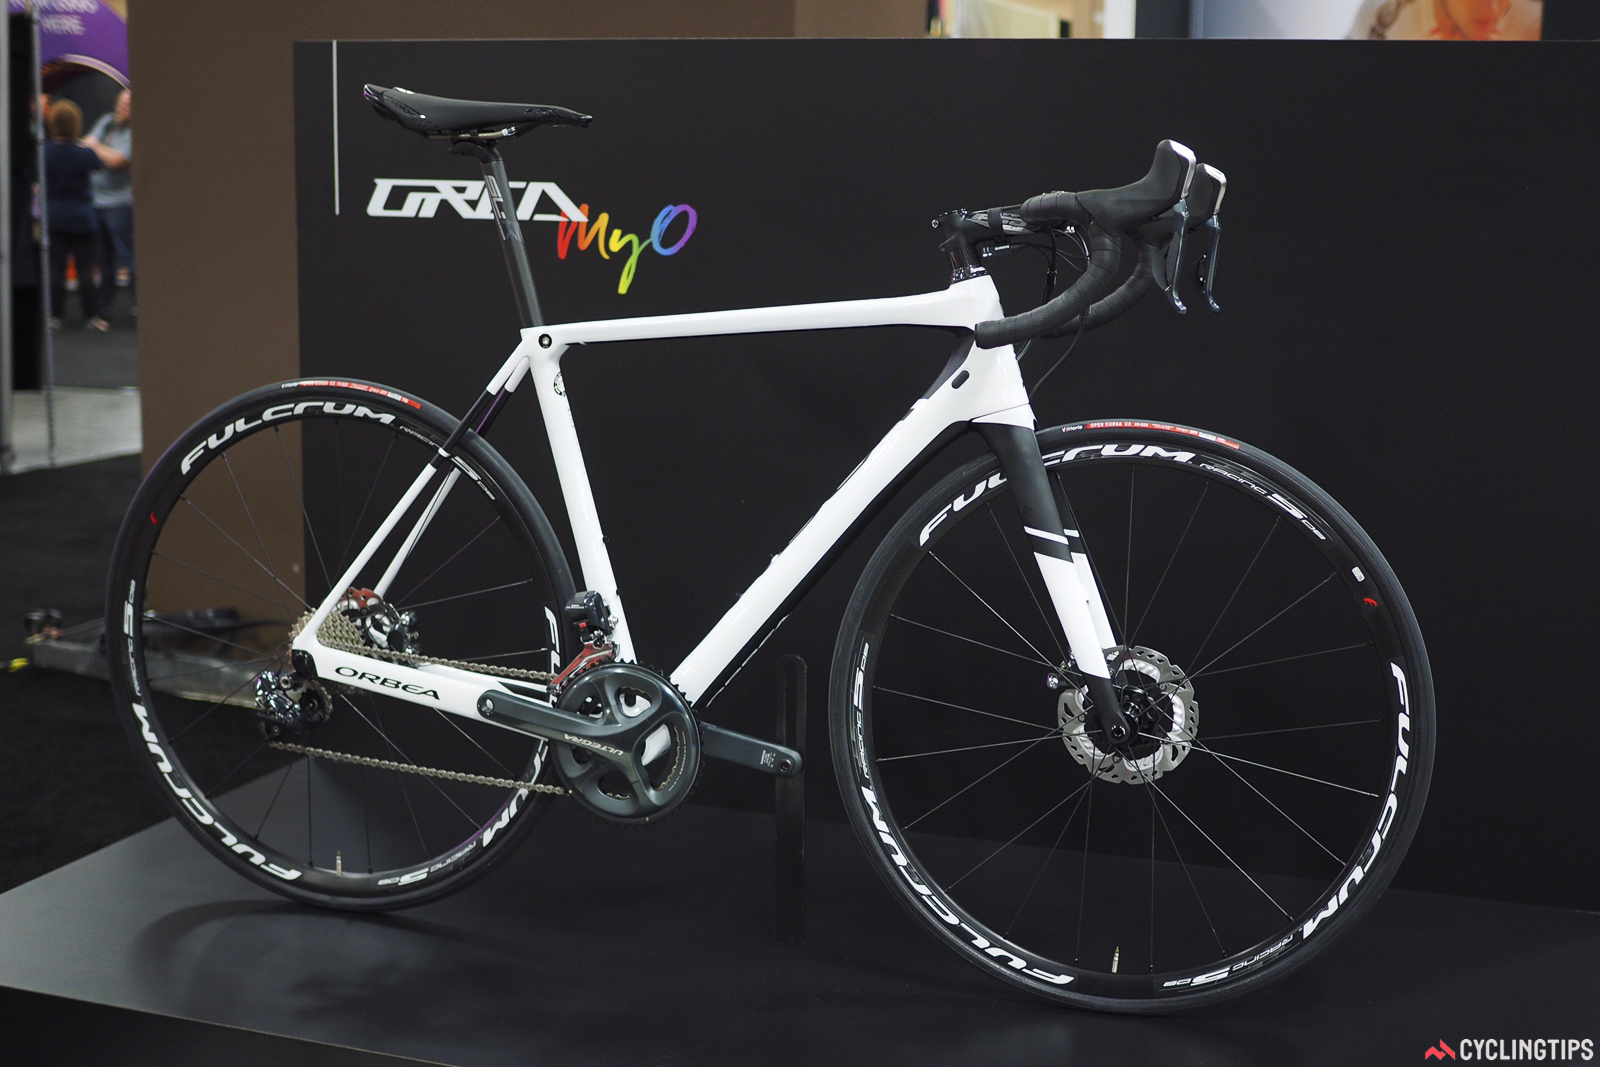 Orbea's flagship Orca road racer has undergone a complete overhaul for 2017, complete with a rather slick-looking disc version.